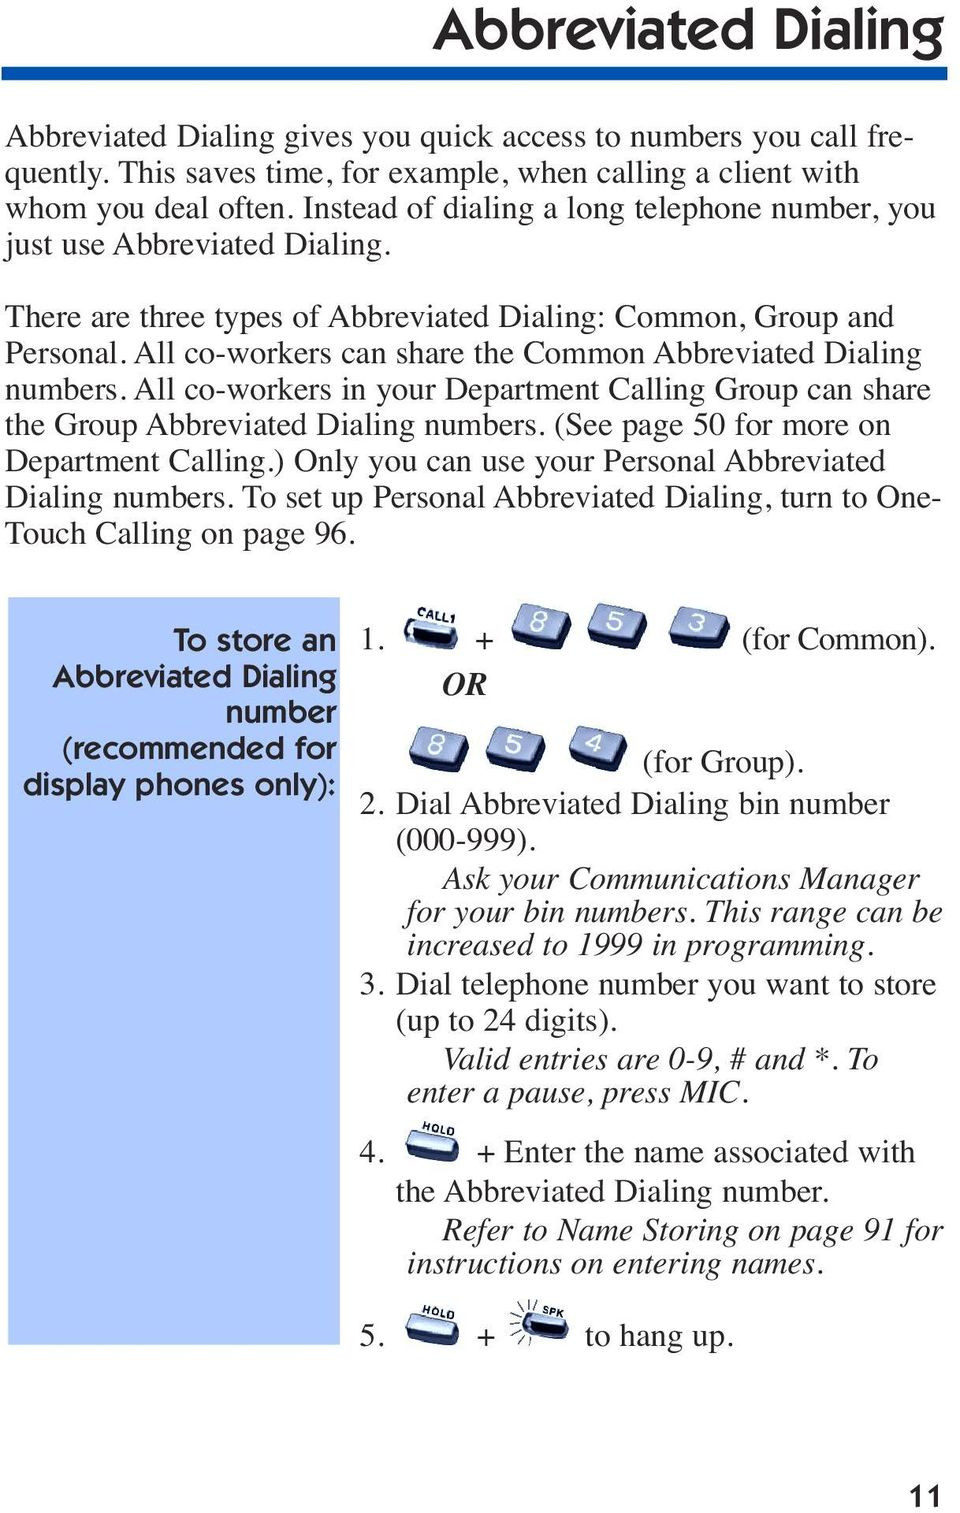 All co-workers can share the Common Abbreviated Dialing numbers. All co-workers in your Department Calling Group can share the Group Abbreviated Dialing numbers.